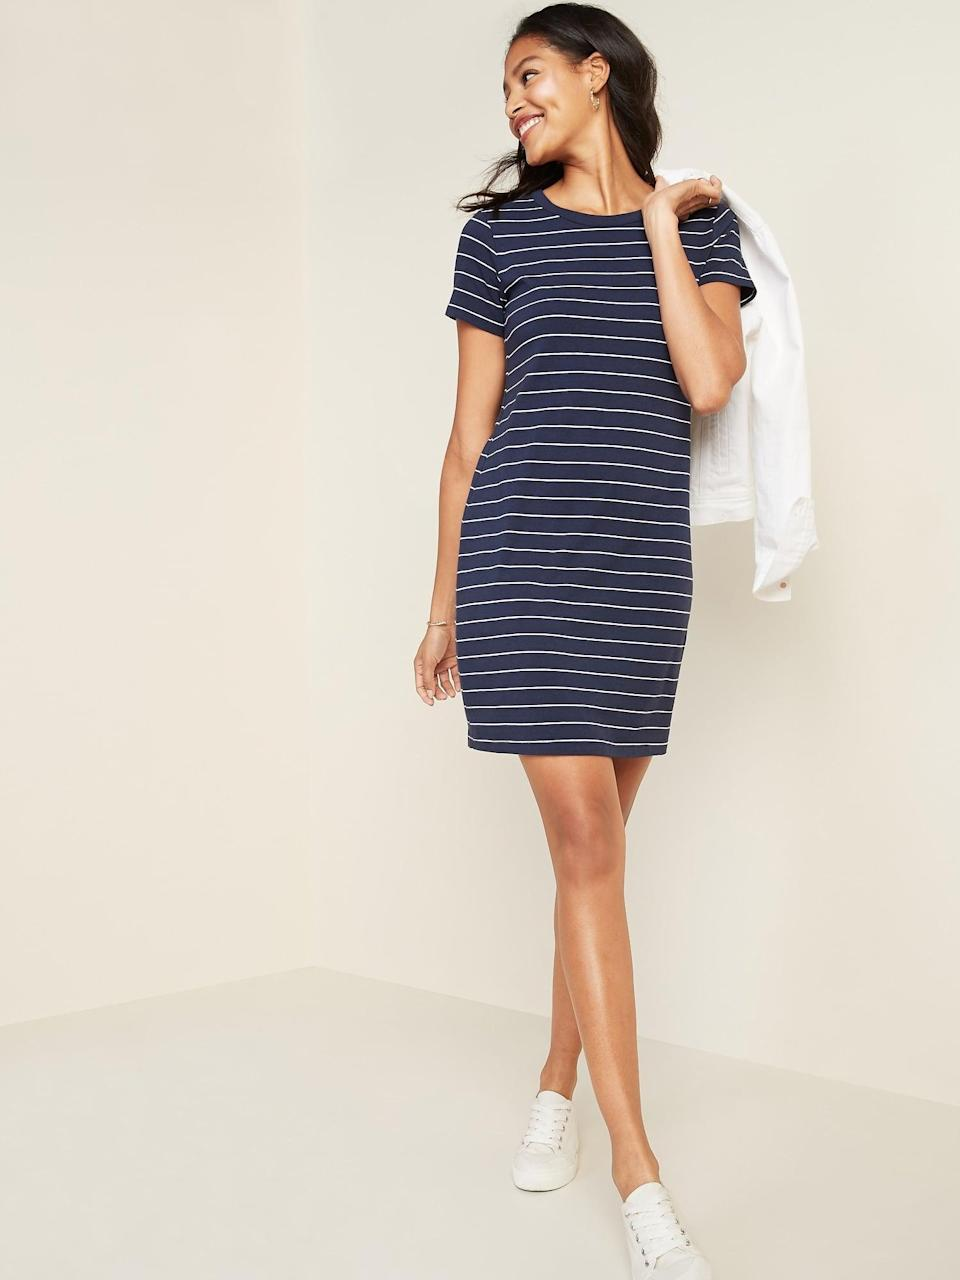 """<p>This <a href=""""https://www.popsugar.com/buy/Old-Navy-Fitted-Striped-Crew-Neck-Tee-Dress-586322?p_name=Old%20Navy%20Fitted%20Striped%20Crew-Neck%20Tee%20Dress&retailer=oldnavy.gap.com&pid=586322&price=15&evar1=fab%3Aus&evar9=47589362&evar98=https%3A%2F%2Fwww.popsugar.com%2Fphoto-gallery%2F47589362%2Fimage%2F47589369%2FOld-Navy-Fitted-Striped-Crew-Neck-Tee-Dress&list1=shopping%2Cold%20navy%2Cdresses%2Csummer%2Cproducts%20under%20%2450&prop13=api&pdata=1"""" class=""""link rapid-noclick-resp"""" rel=""""nofollow noopener"""" target=""""_blank"""" data-ylk=""""slk:Old Navy Fitted Striped Crew-Neck Tee Dress"""">Old Navy Fitted Striped Crew-Neck Tee Dress</a> ($15, originally $30) will be a summer staple.</p>"""